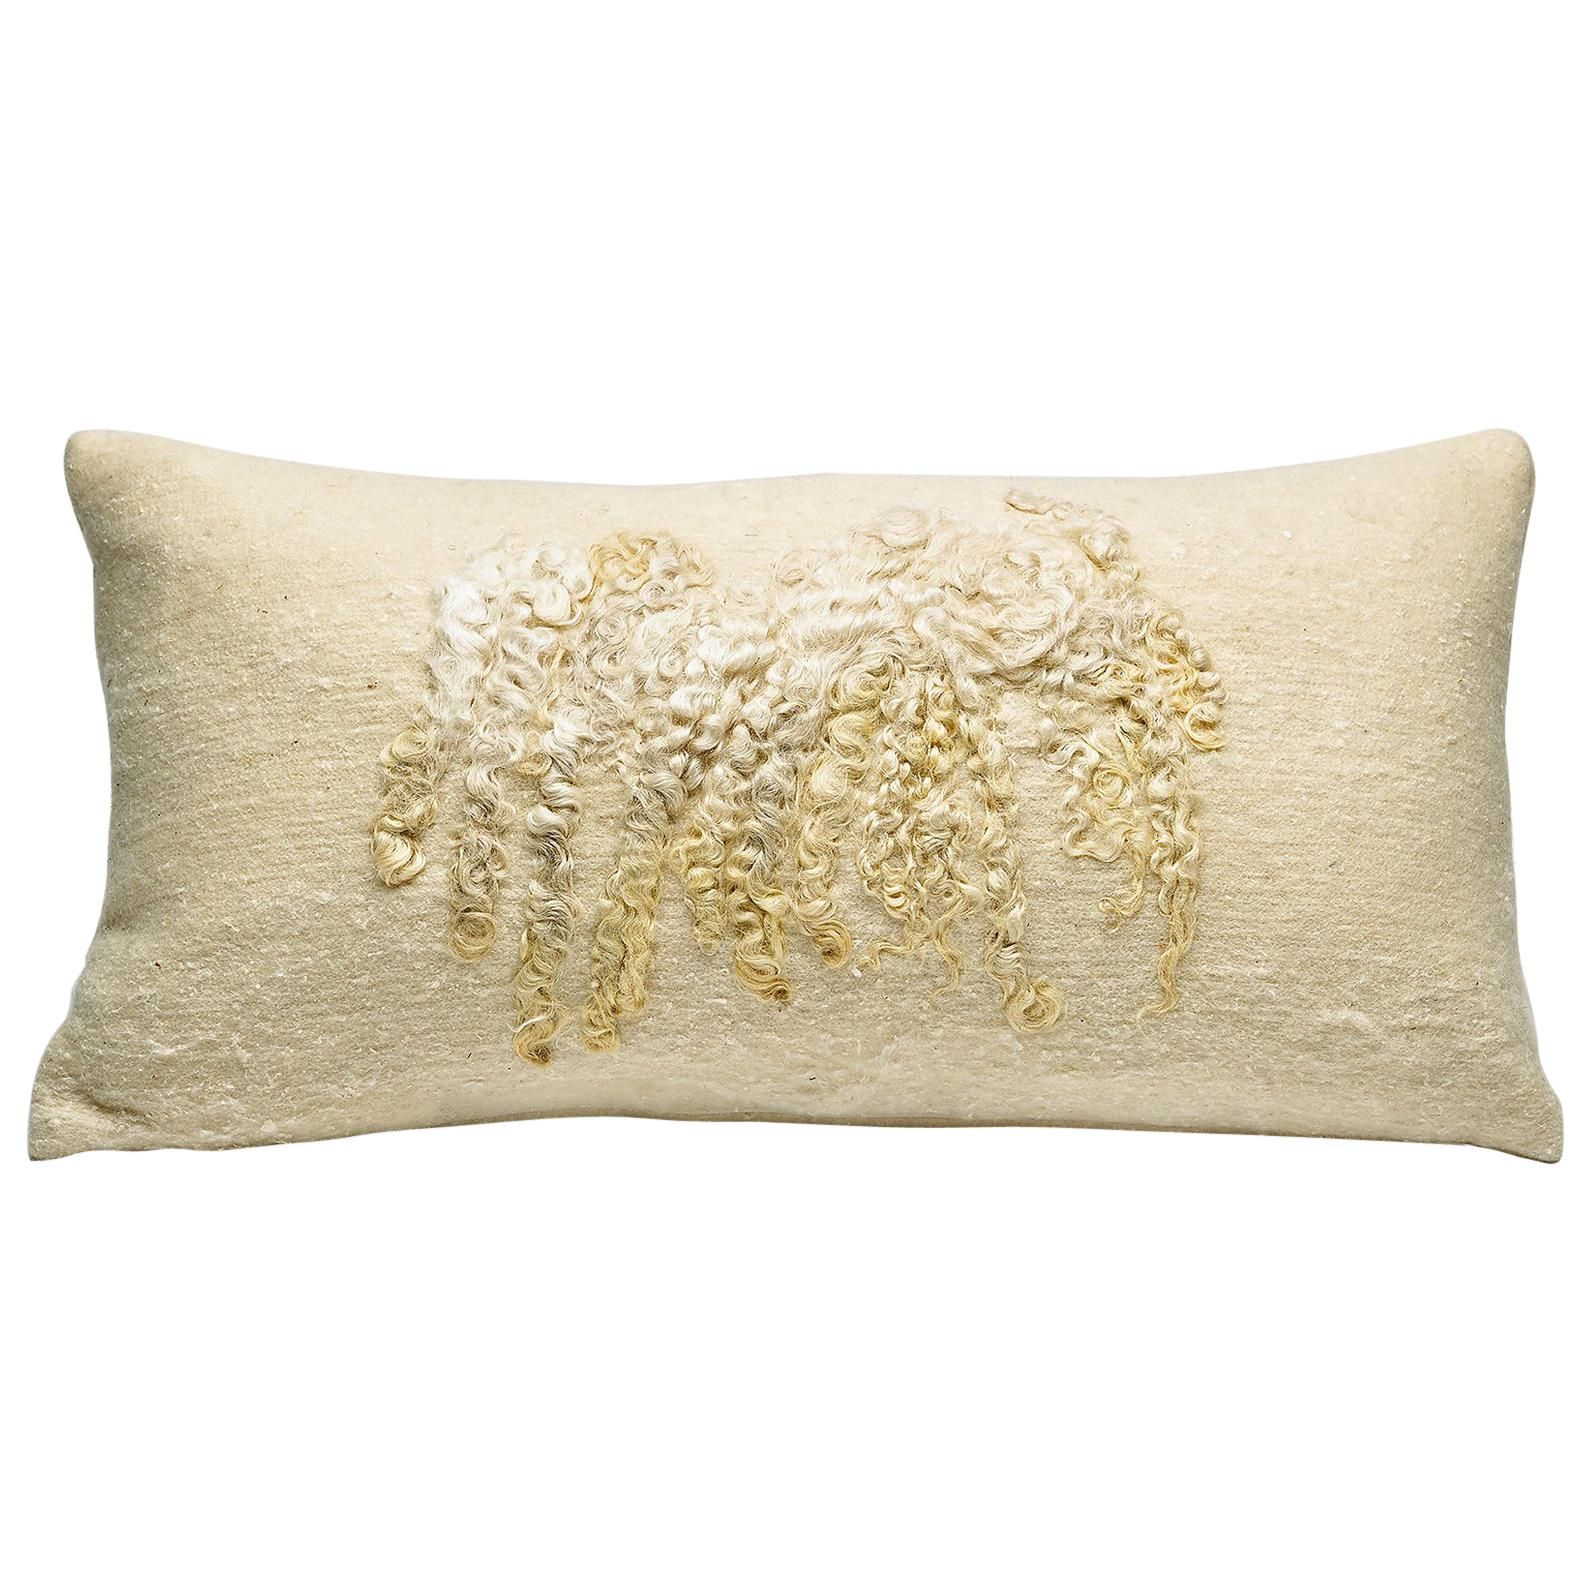 Luxury Wool Wensleydale Pillow, Small - Heritage Sheep Collection